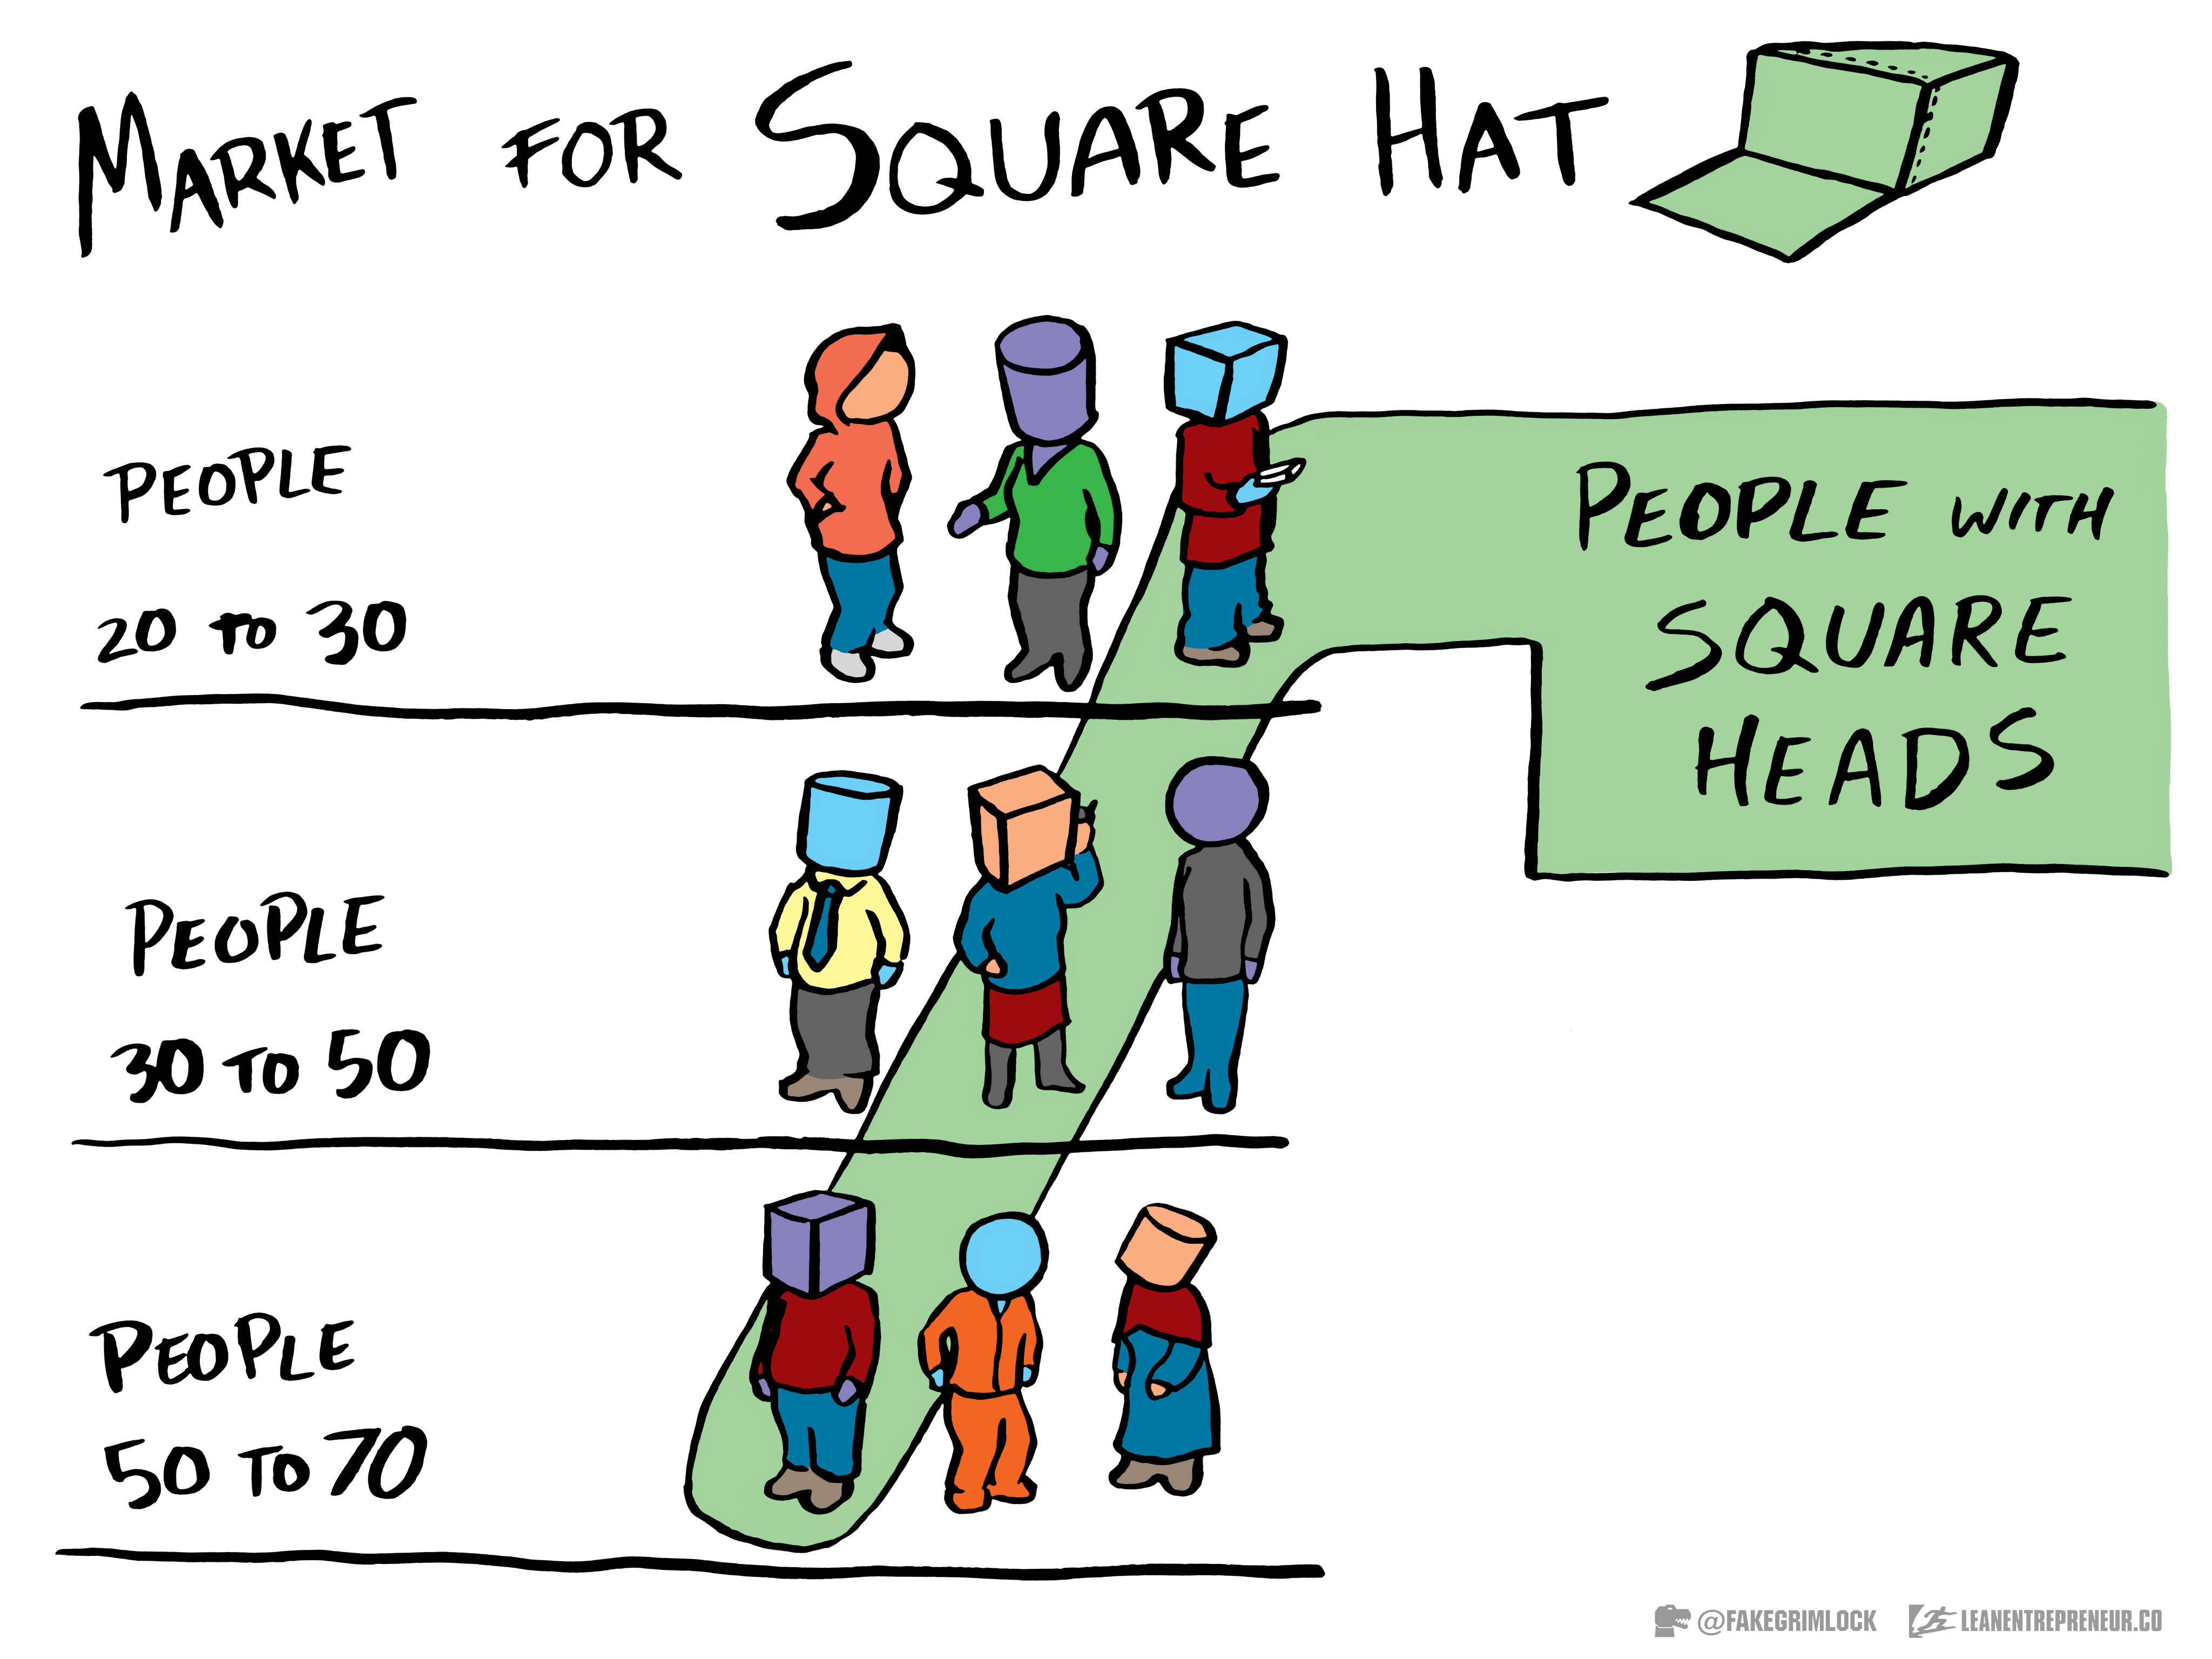 Market for Square Hat from The LeanEntrepreneur.co